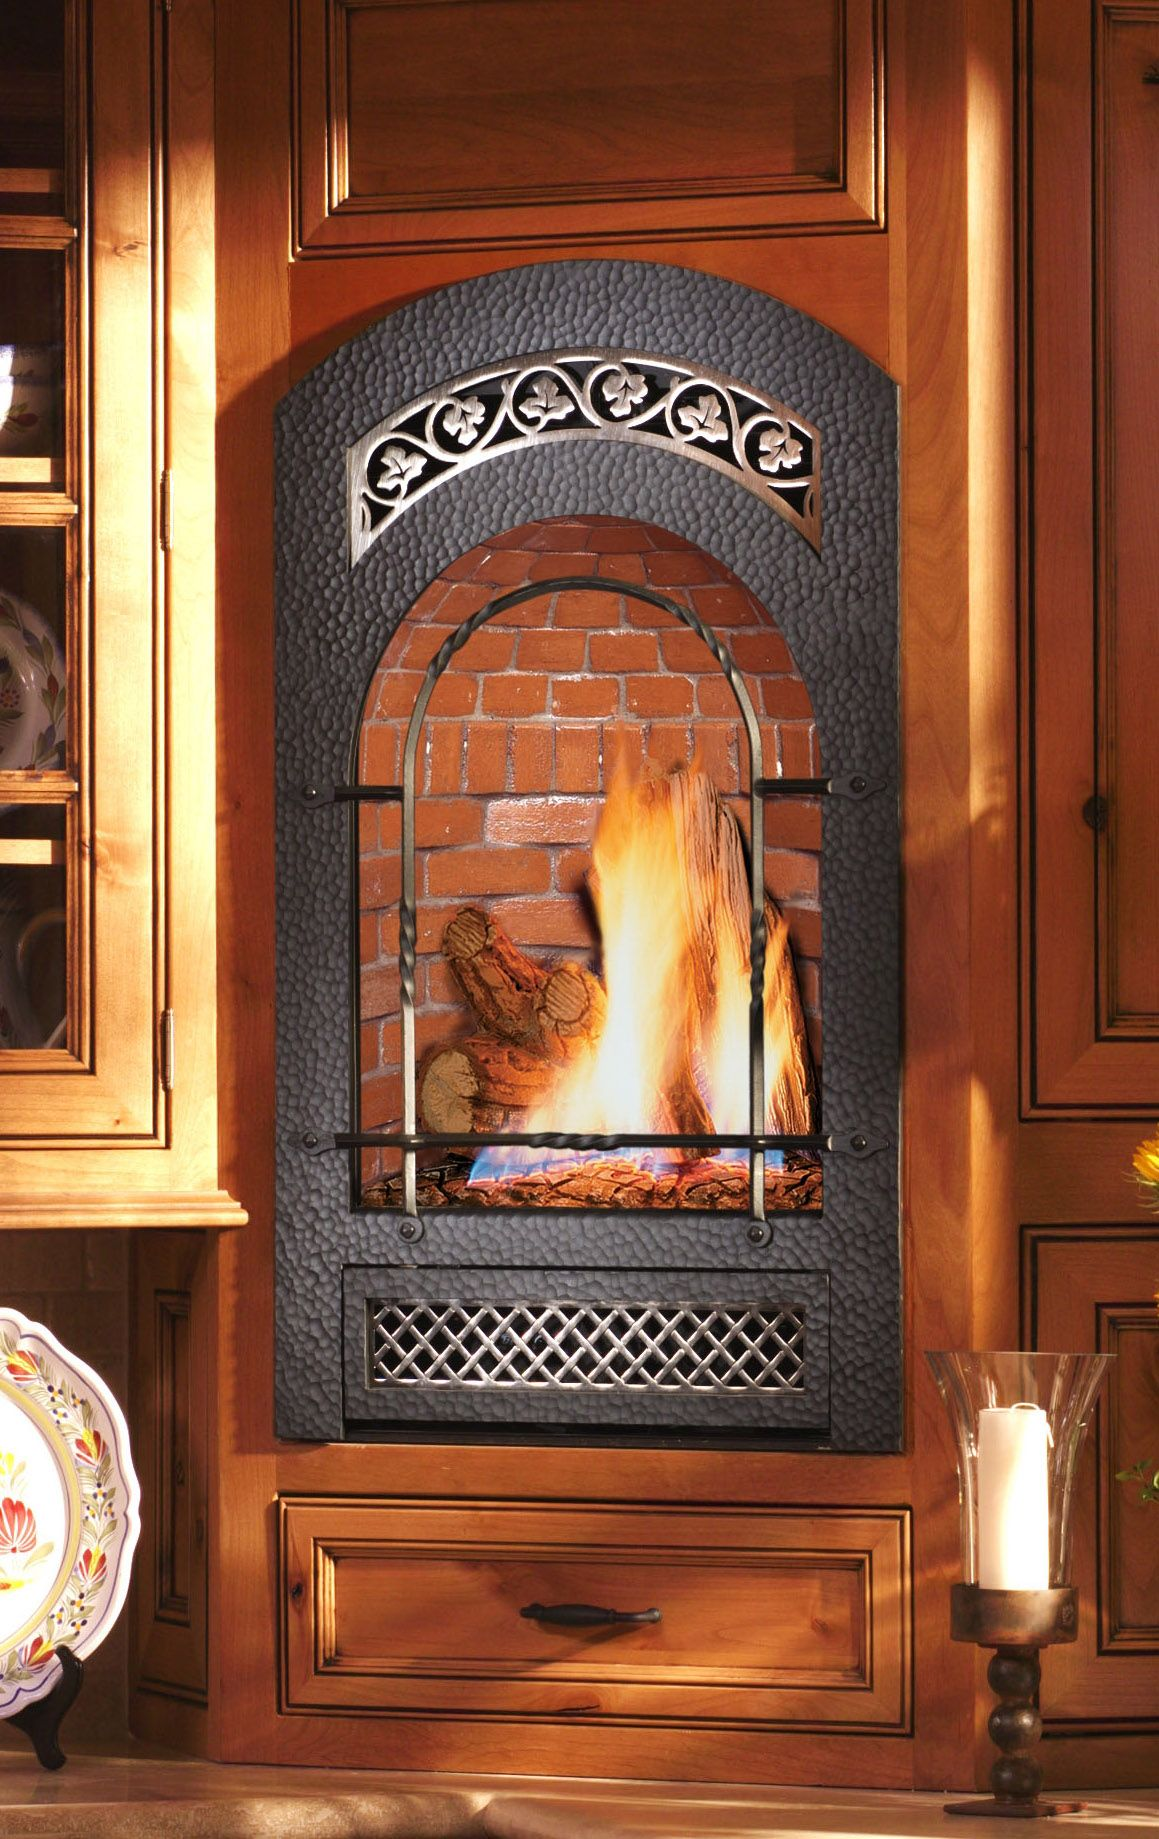 Ventless Wall Mount Gas Fireplace Small Wall Mounted Gas Fireplace Great For Bedrooms